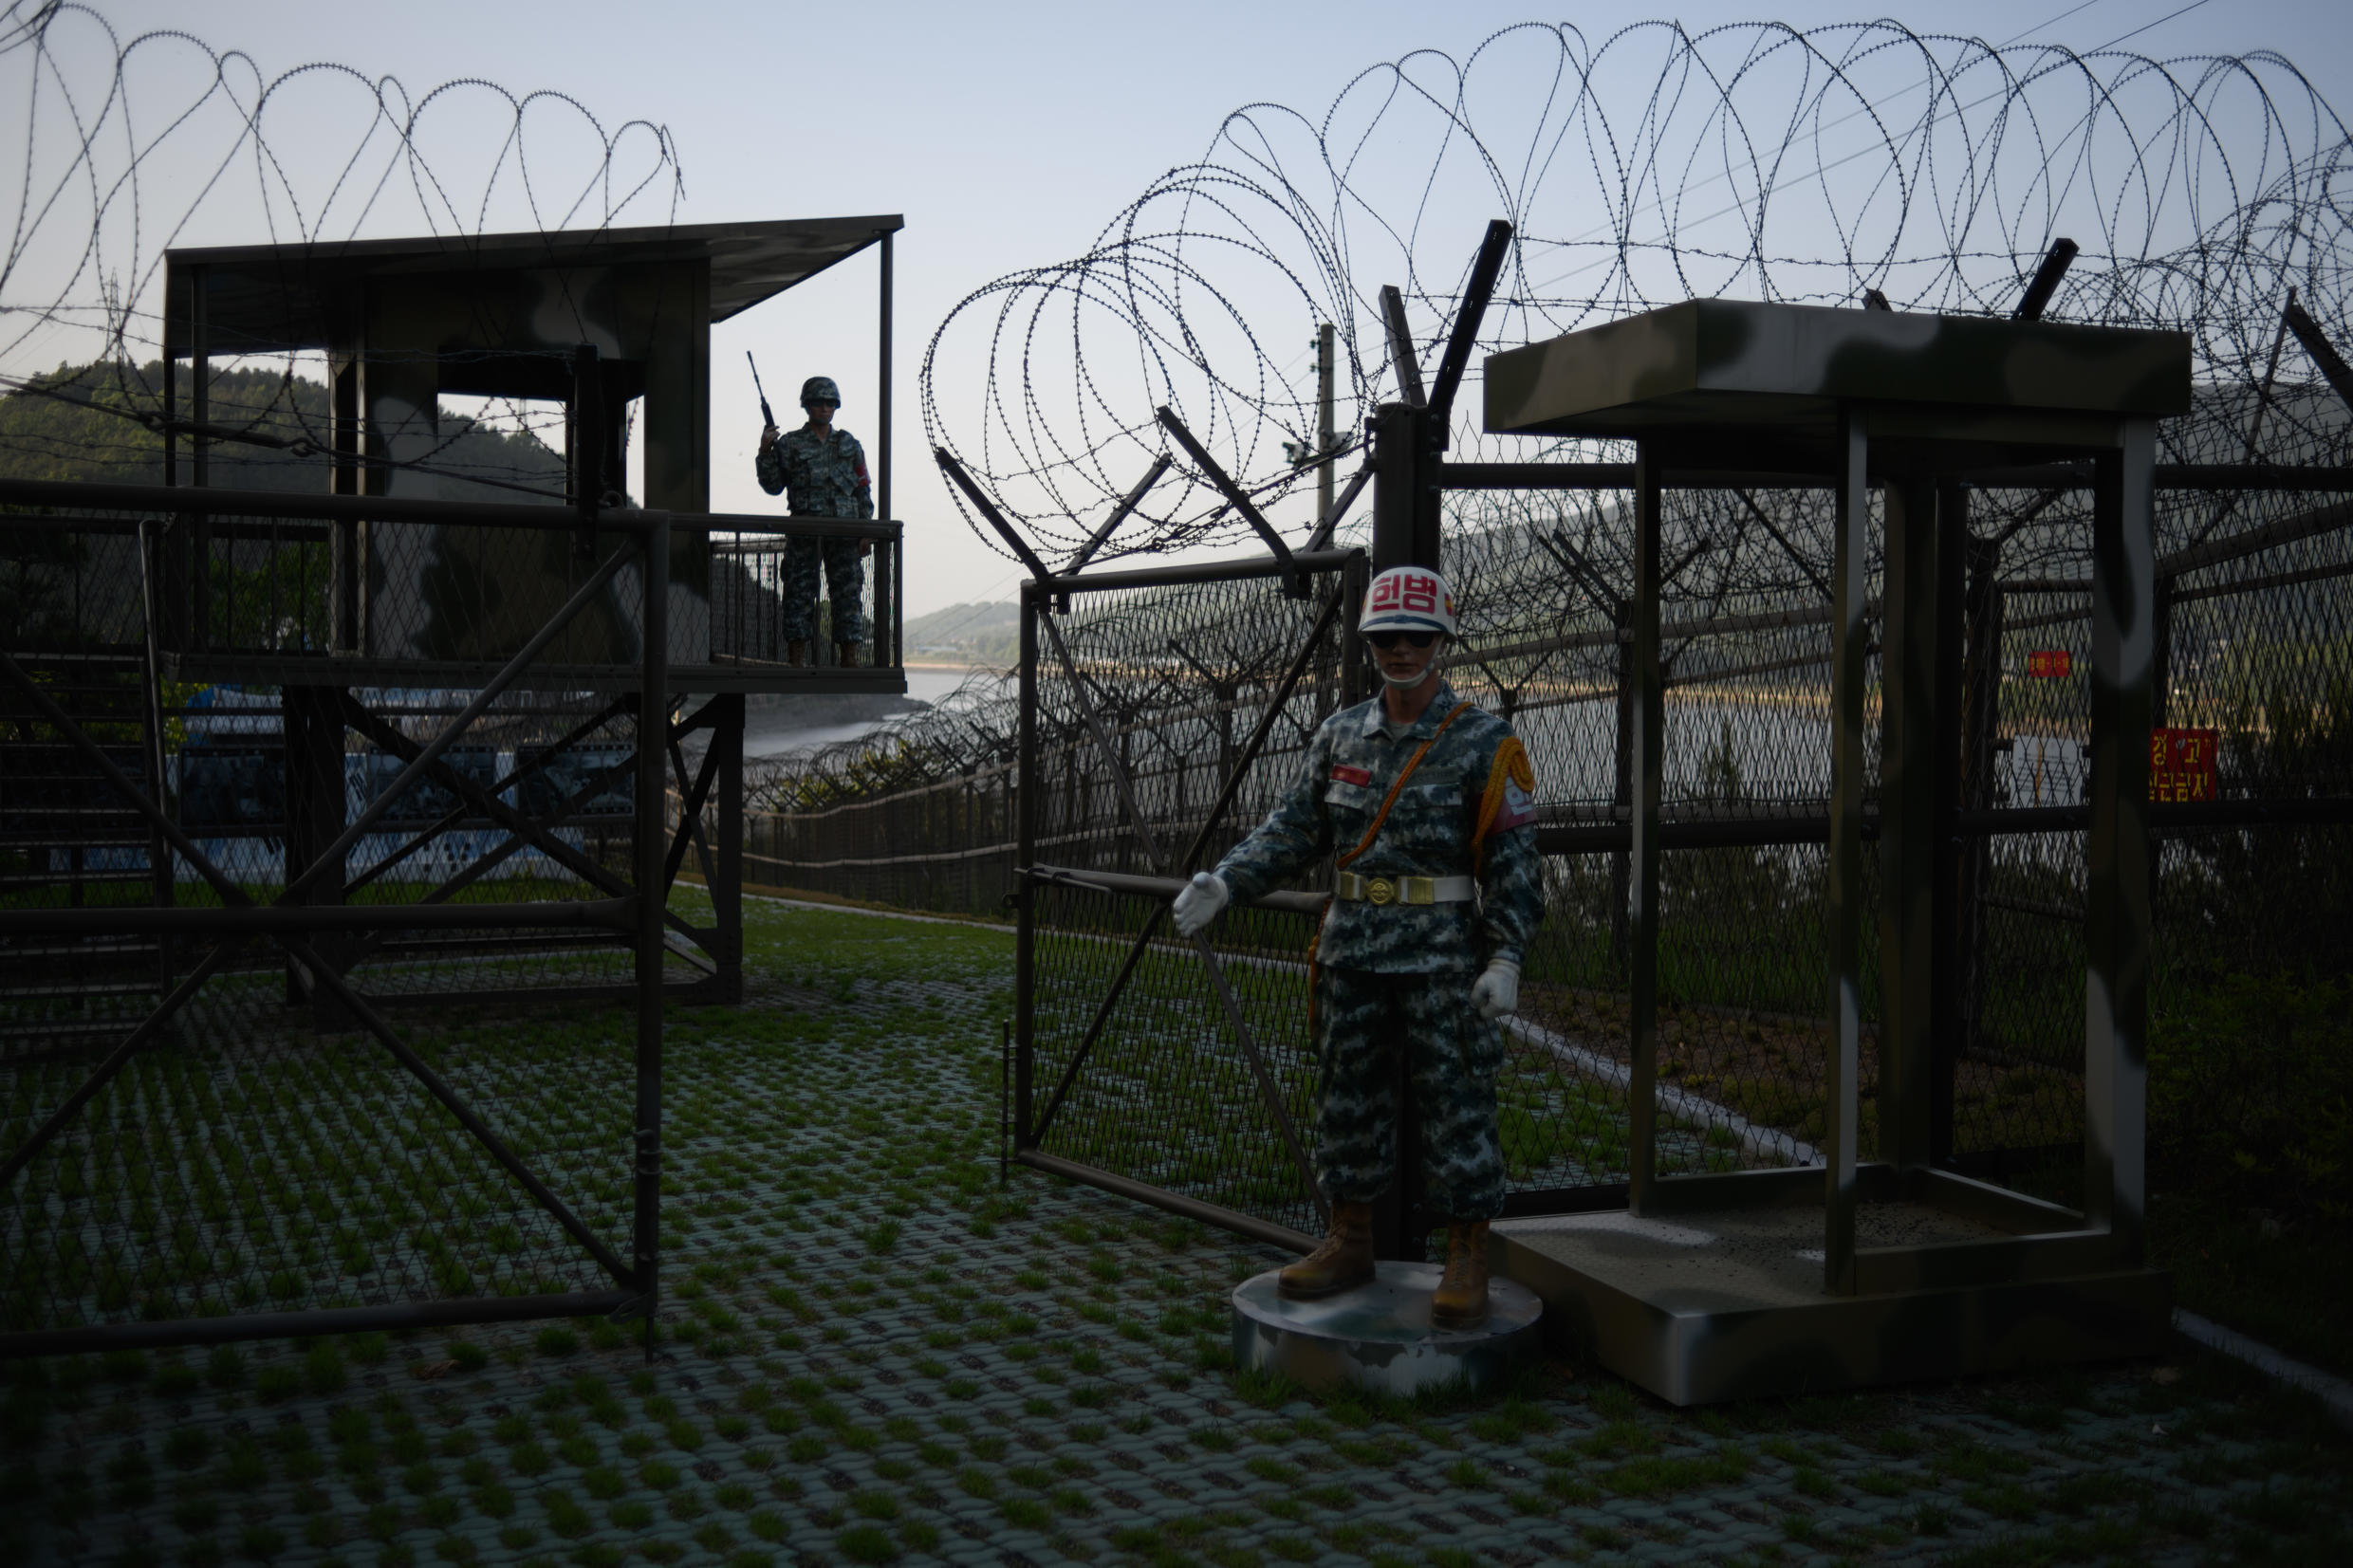 The Demilitarized Zone dividing North and South Korea is one of the most fortified places in the world